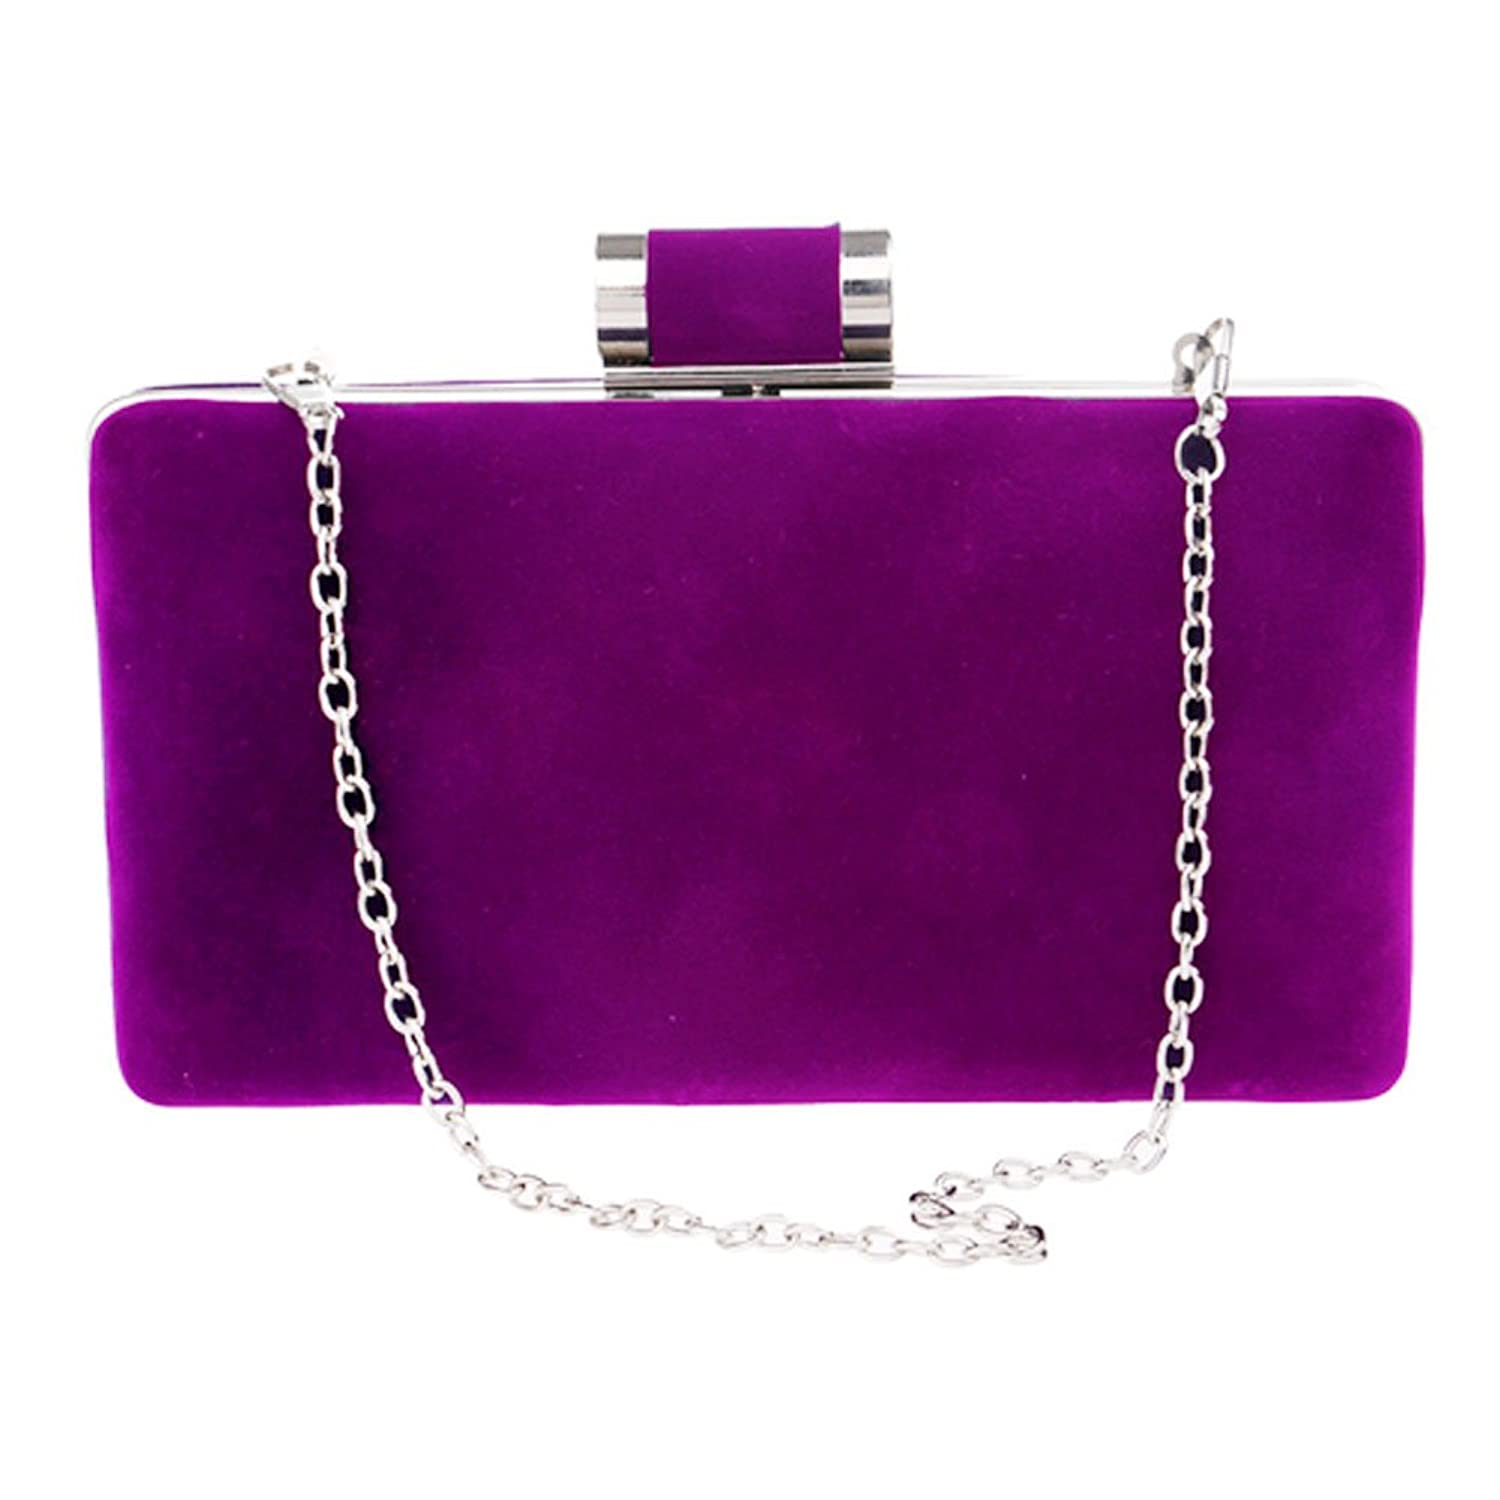 DaoJian Women Evening Bags Handbag Clutch Bag